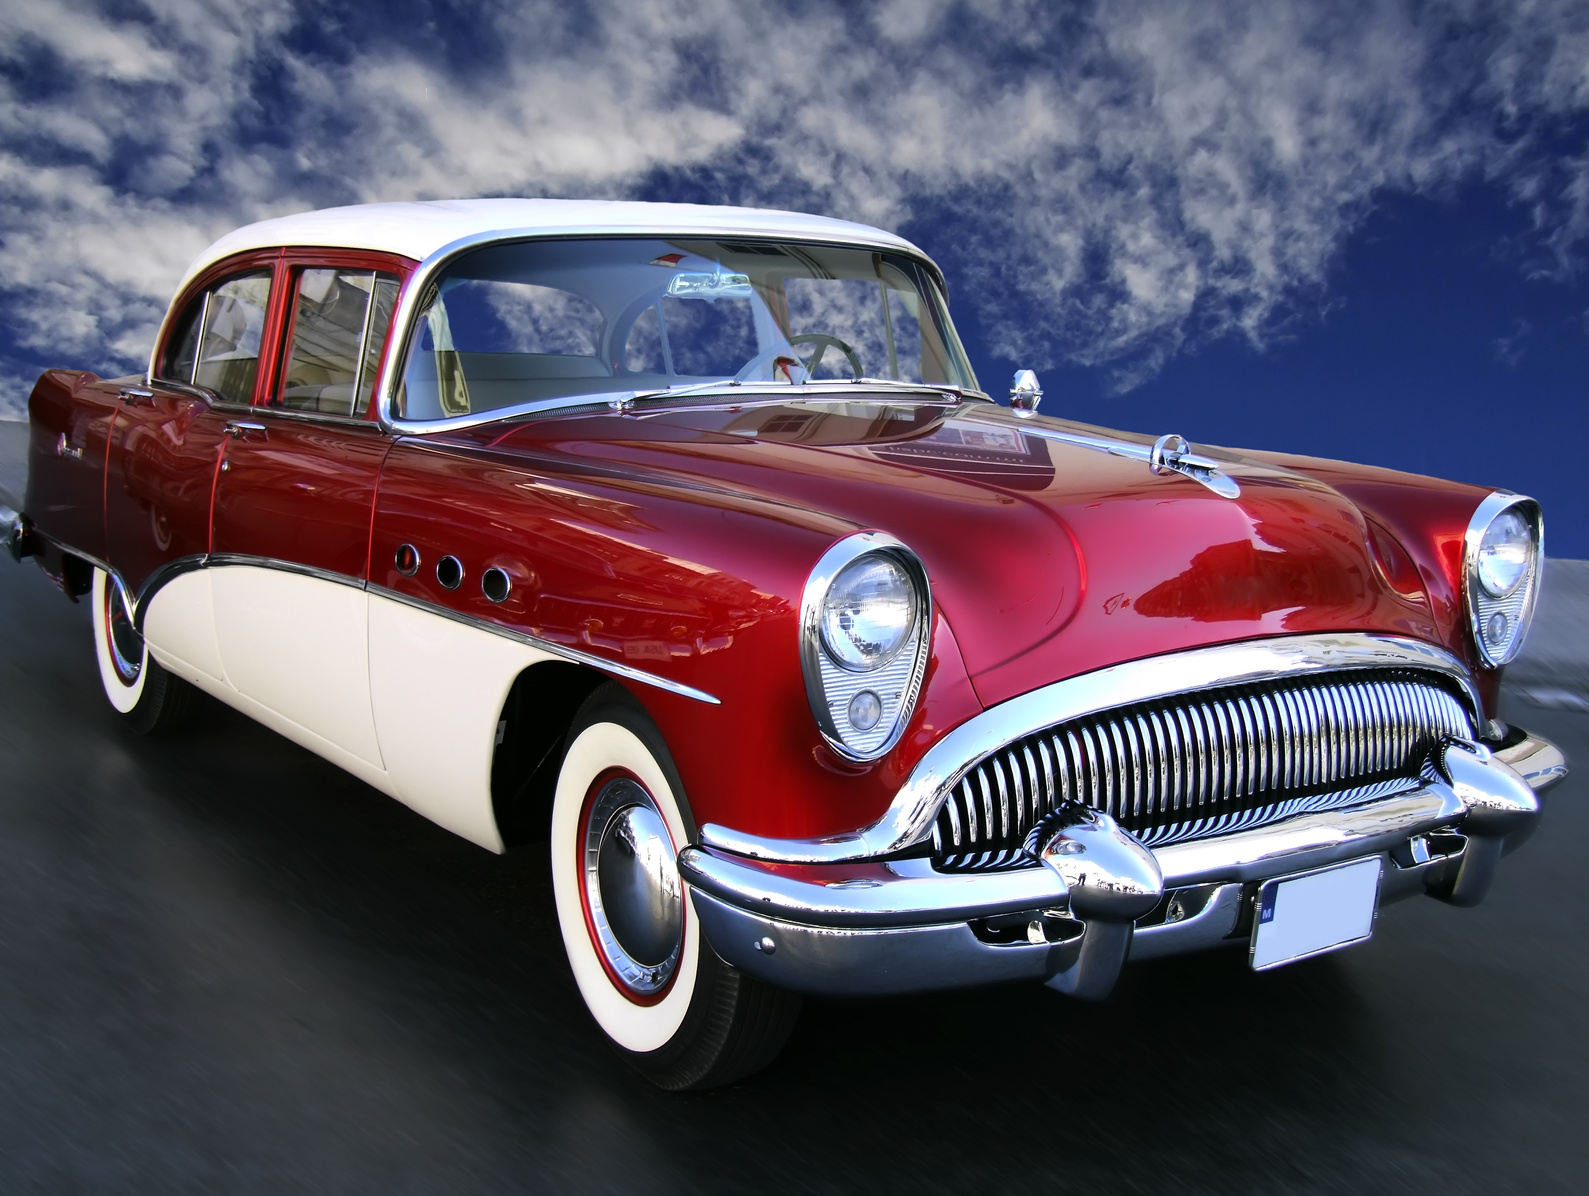 Types of Classic Cars and Insurance